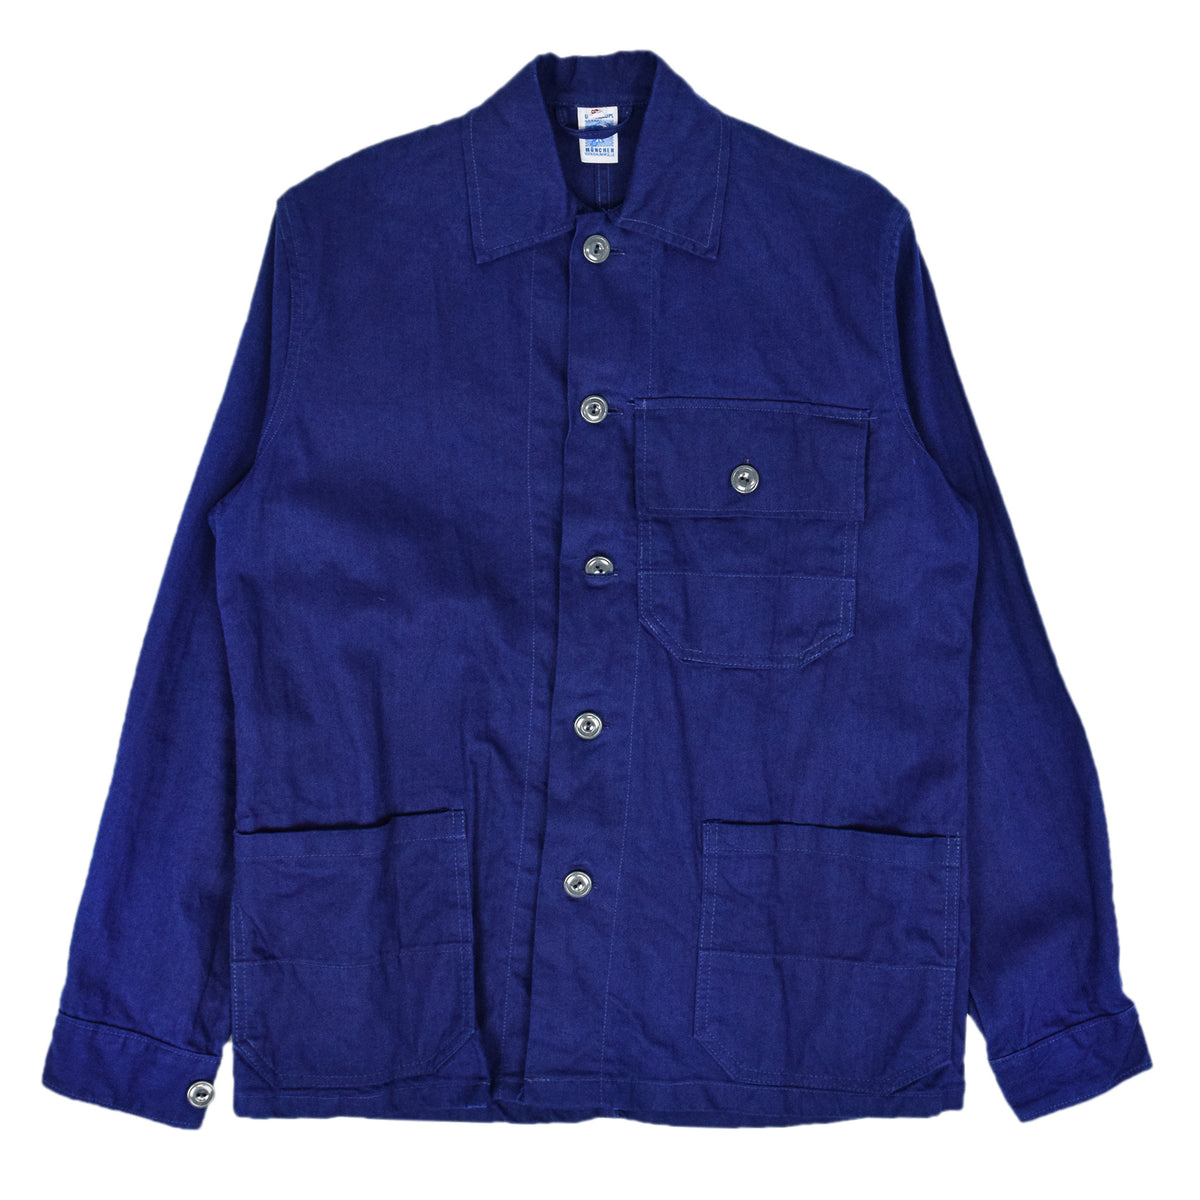 Vintage Indigo Blue French Style Worker Sanforized Herringbone Chore Jacket S FRONT